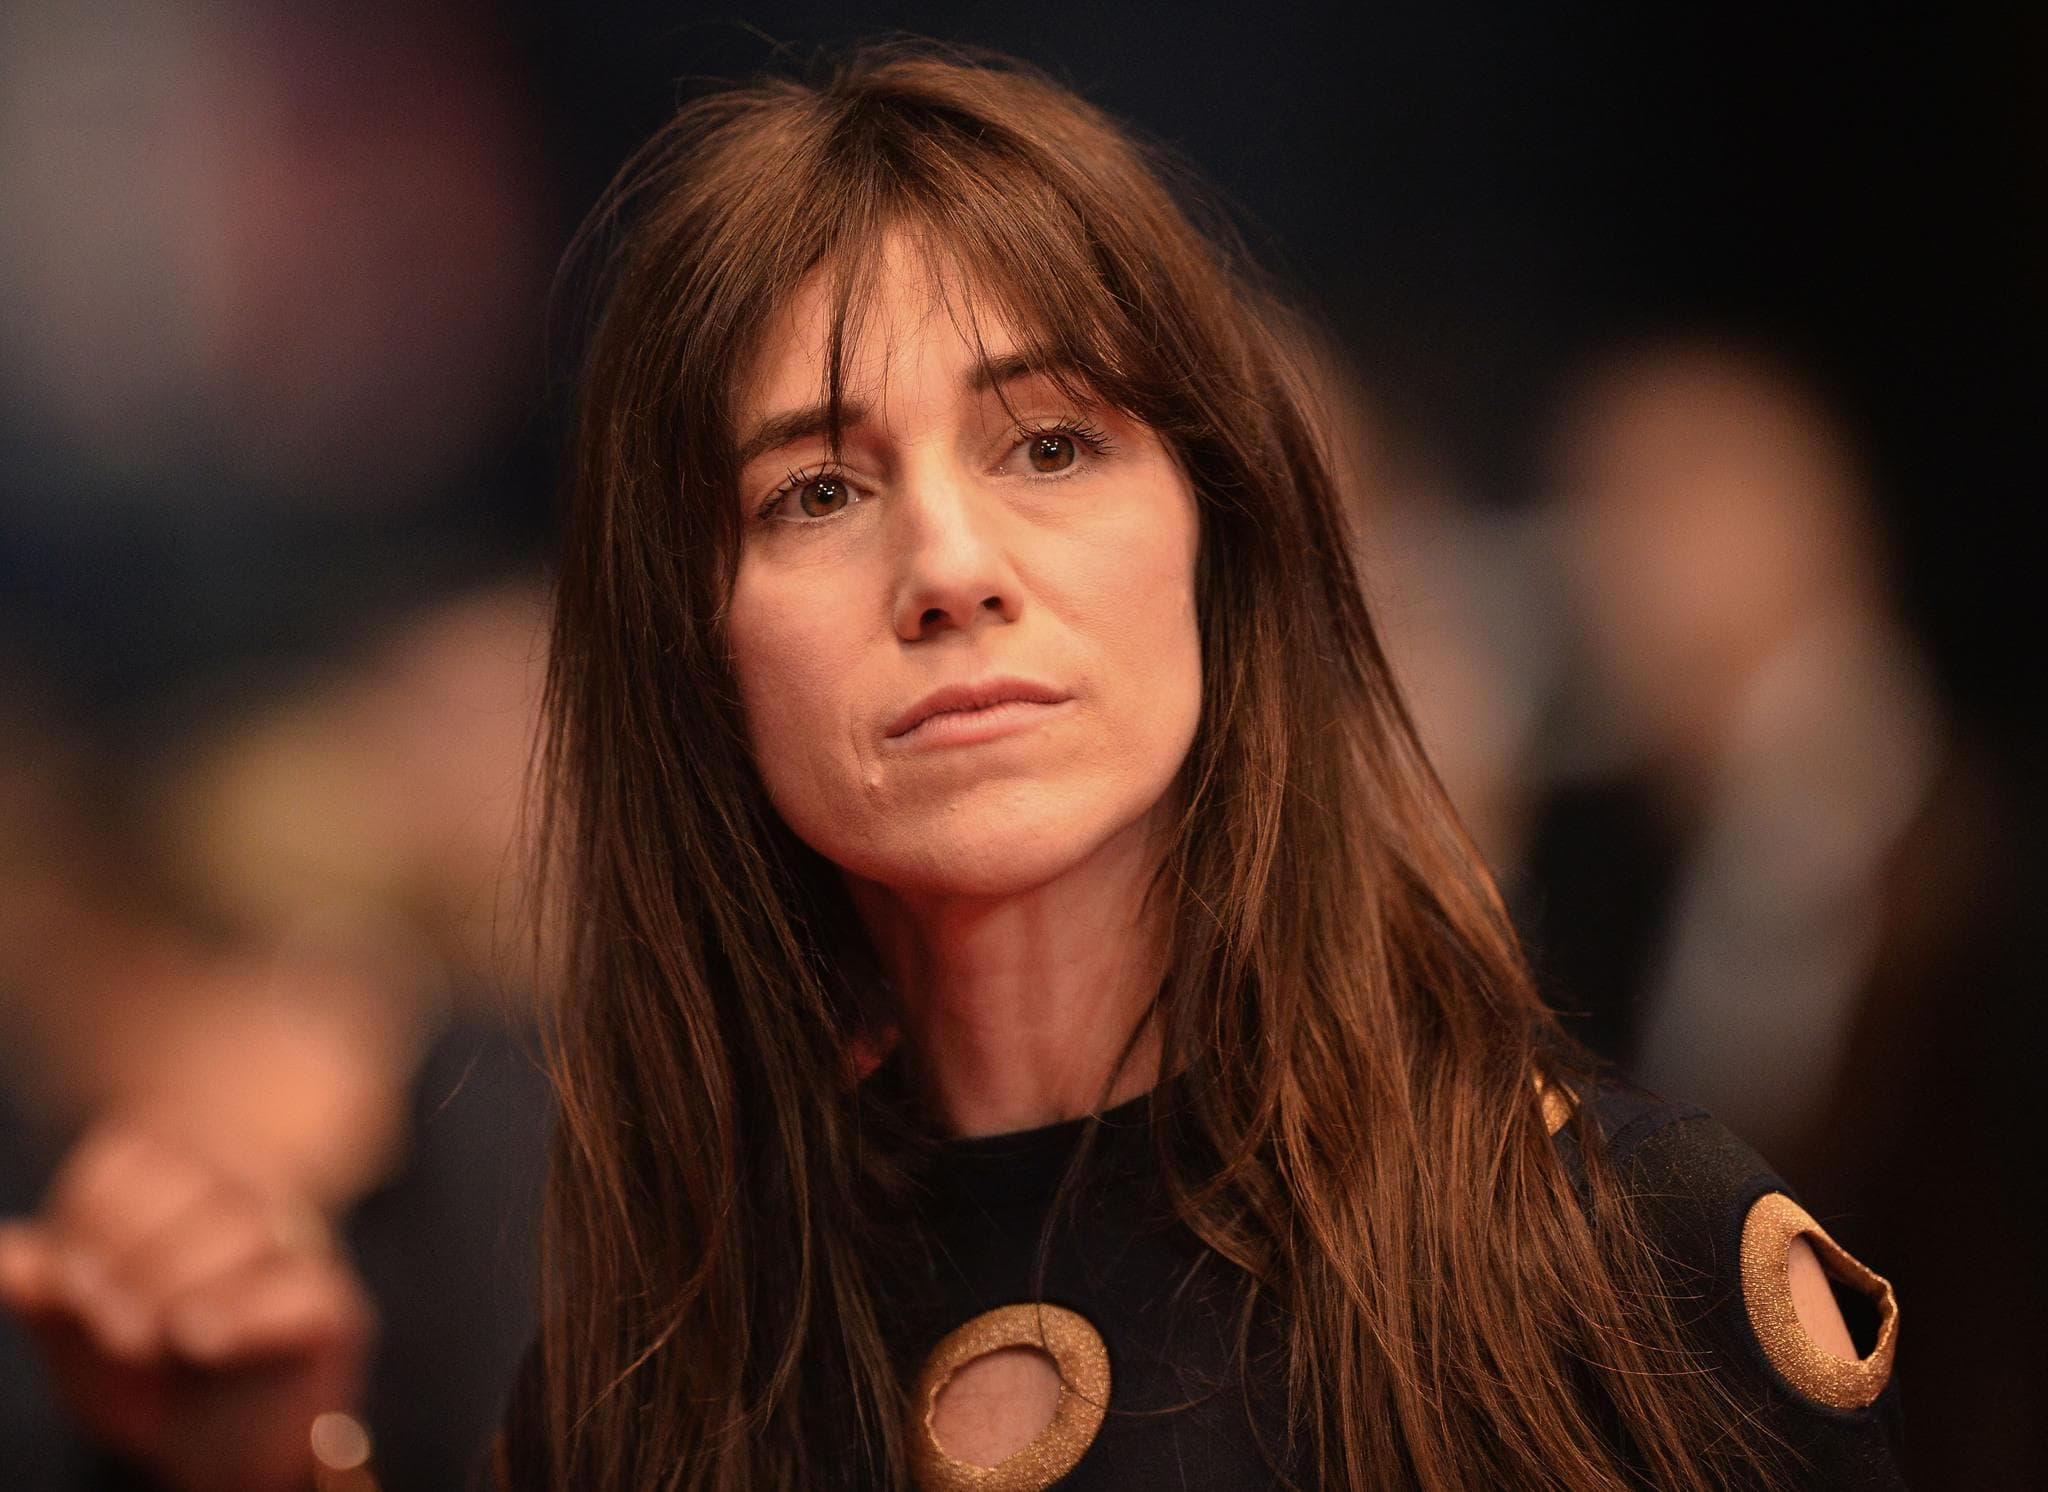 Charlotte Gainsbourg Full hd wallpapers